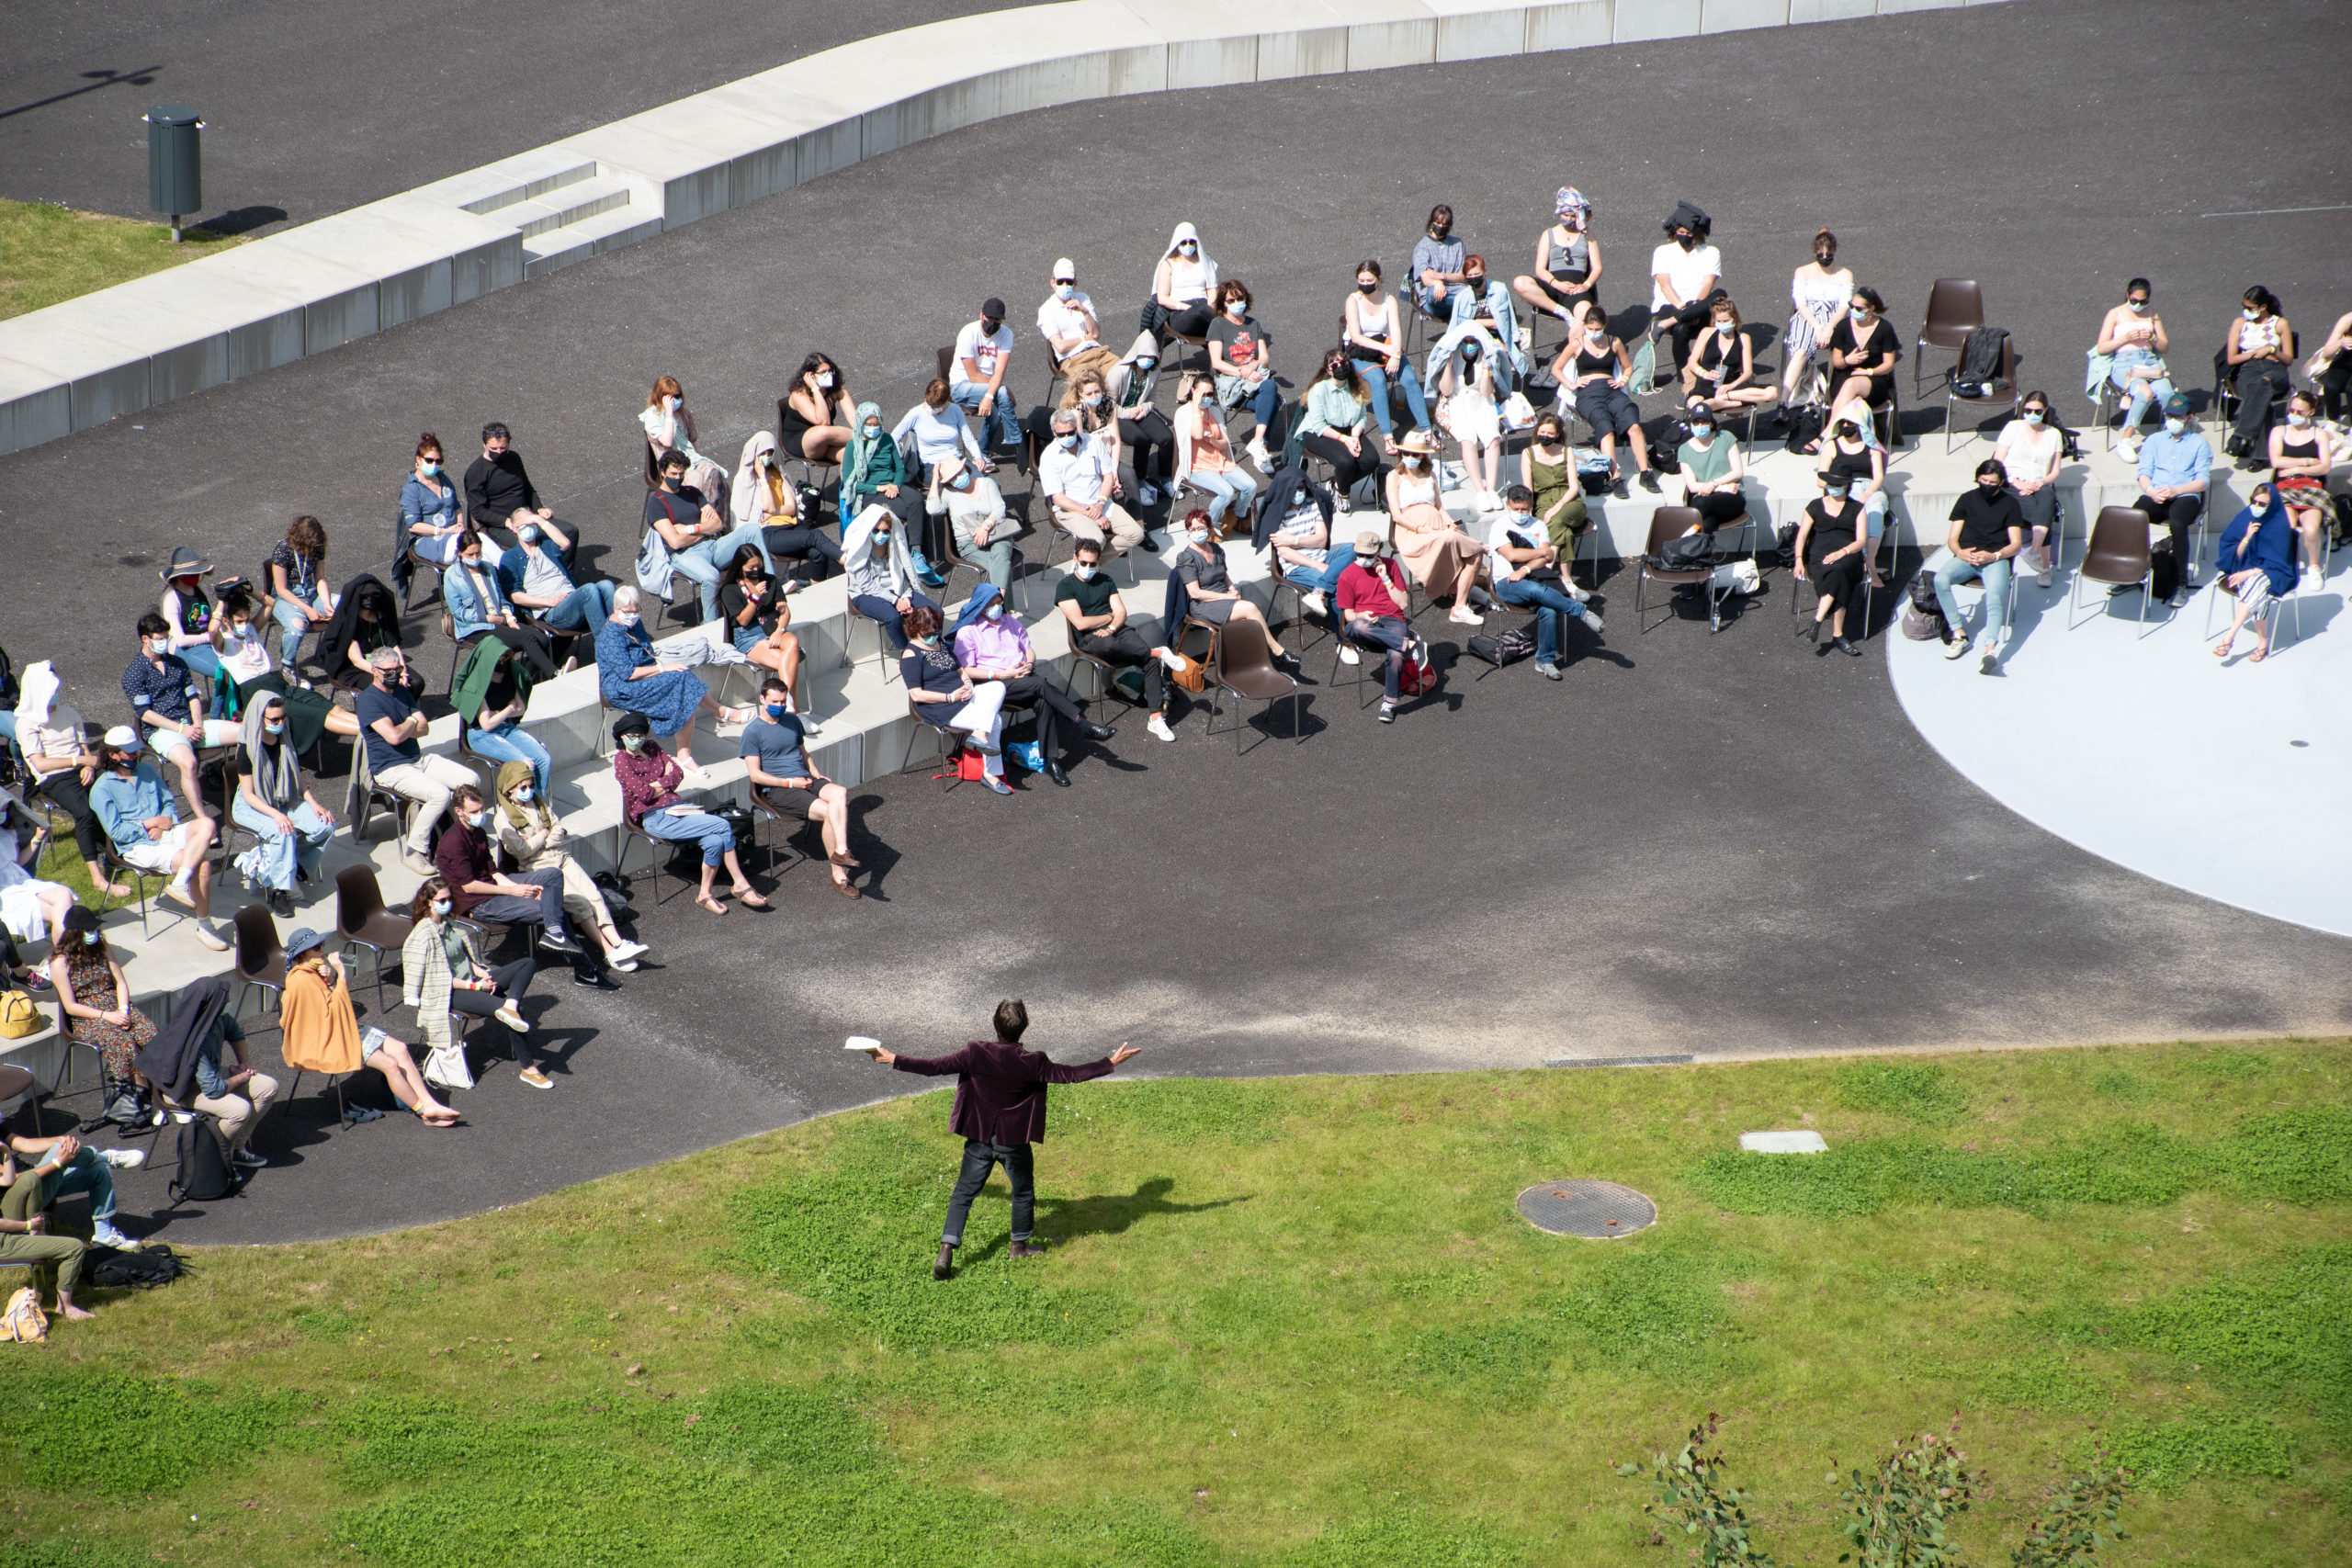 A man dressed in black is seen from above, performing in front of an outdoor audience.